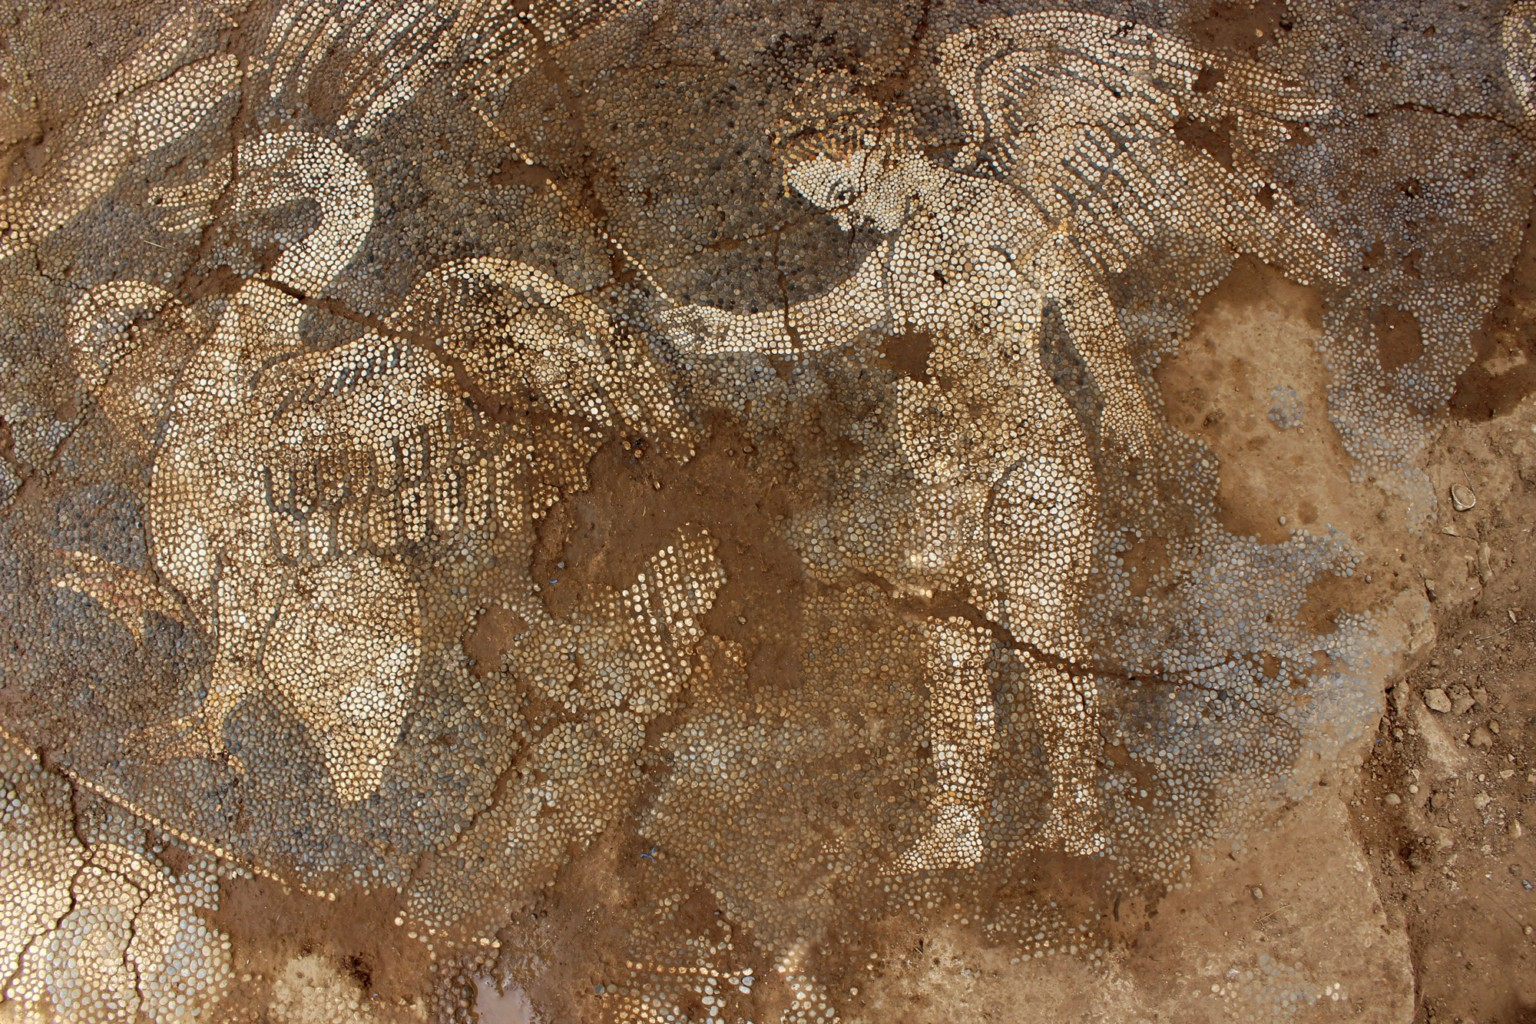 A Friendly Octopus Found Within Ancient River Pebble Mosaics in Greece